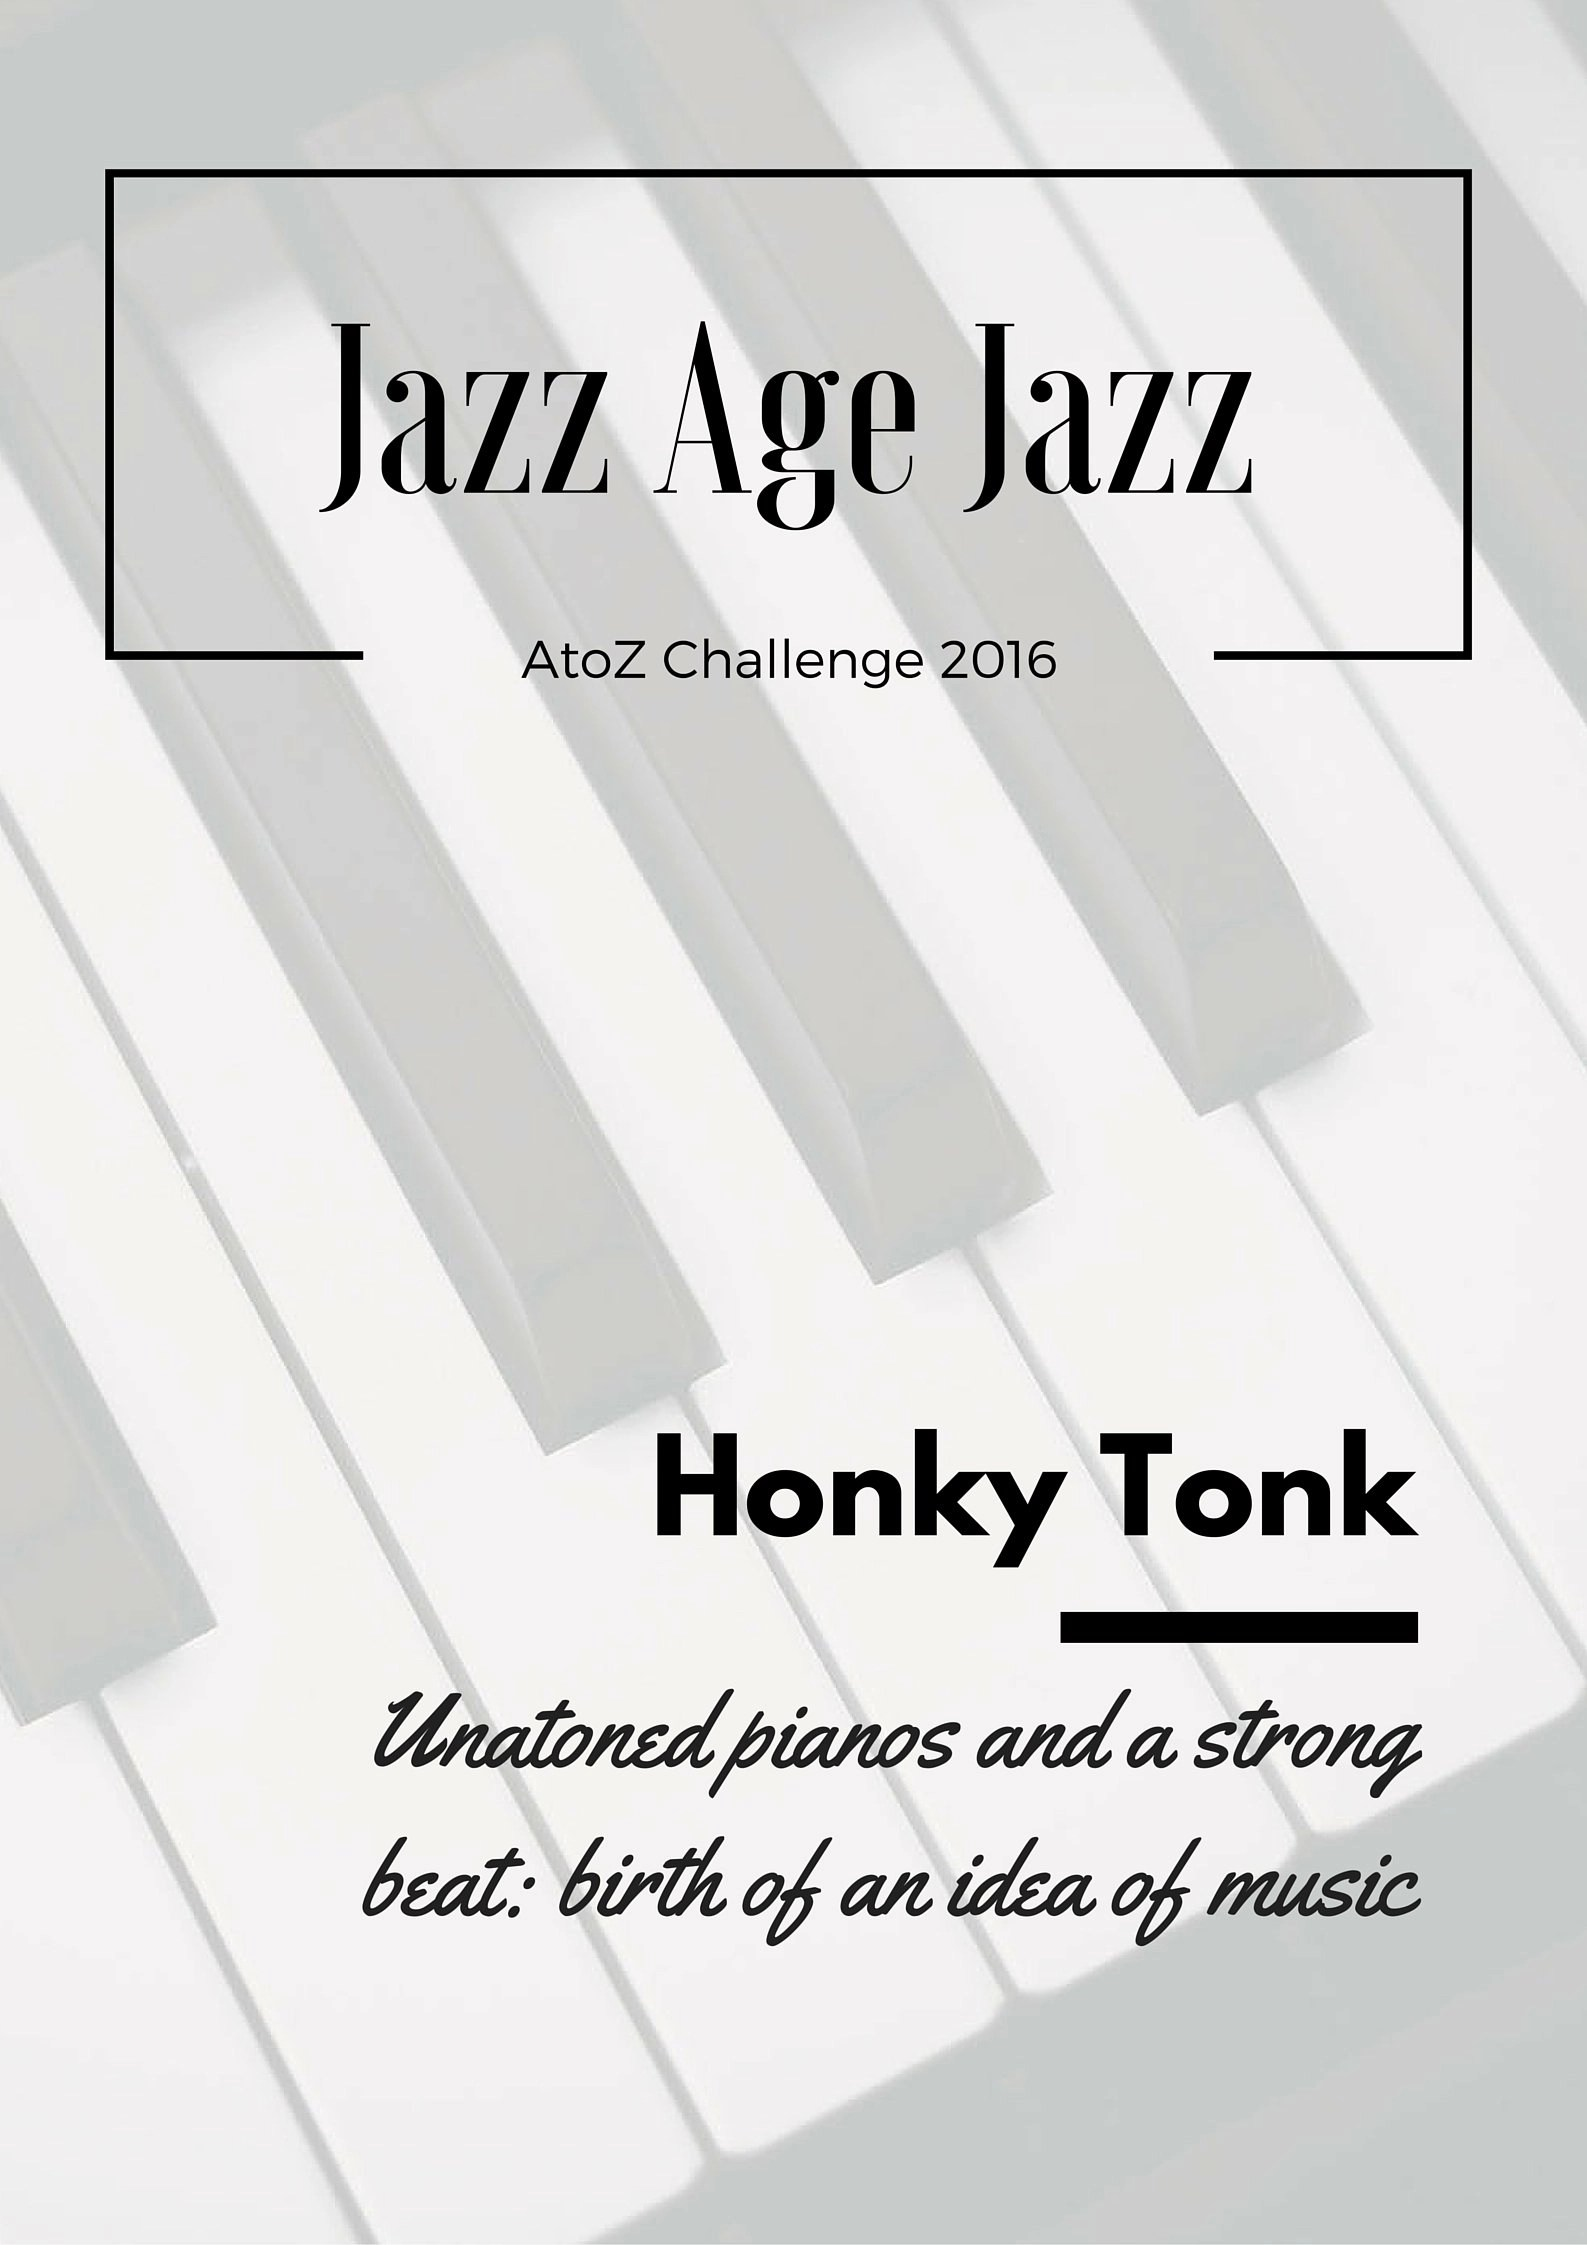 Jazz Age Jazz - Hinky Tonk: unatoned piano and a strong beat, birth of an idea of music